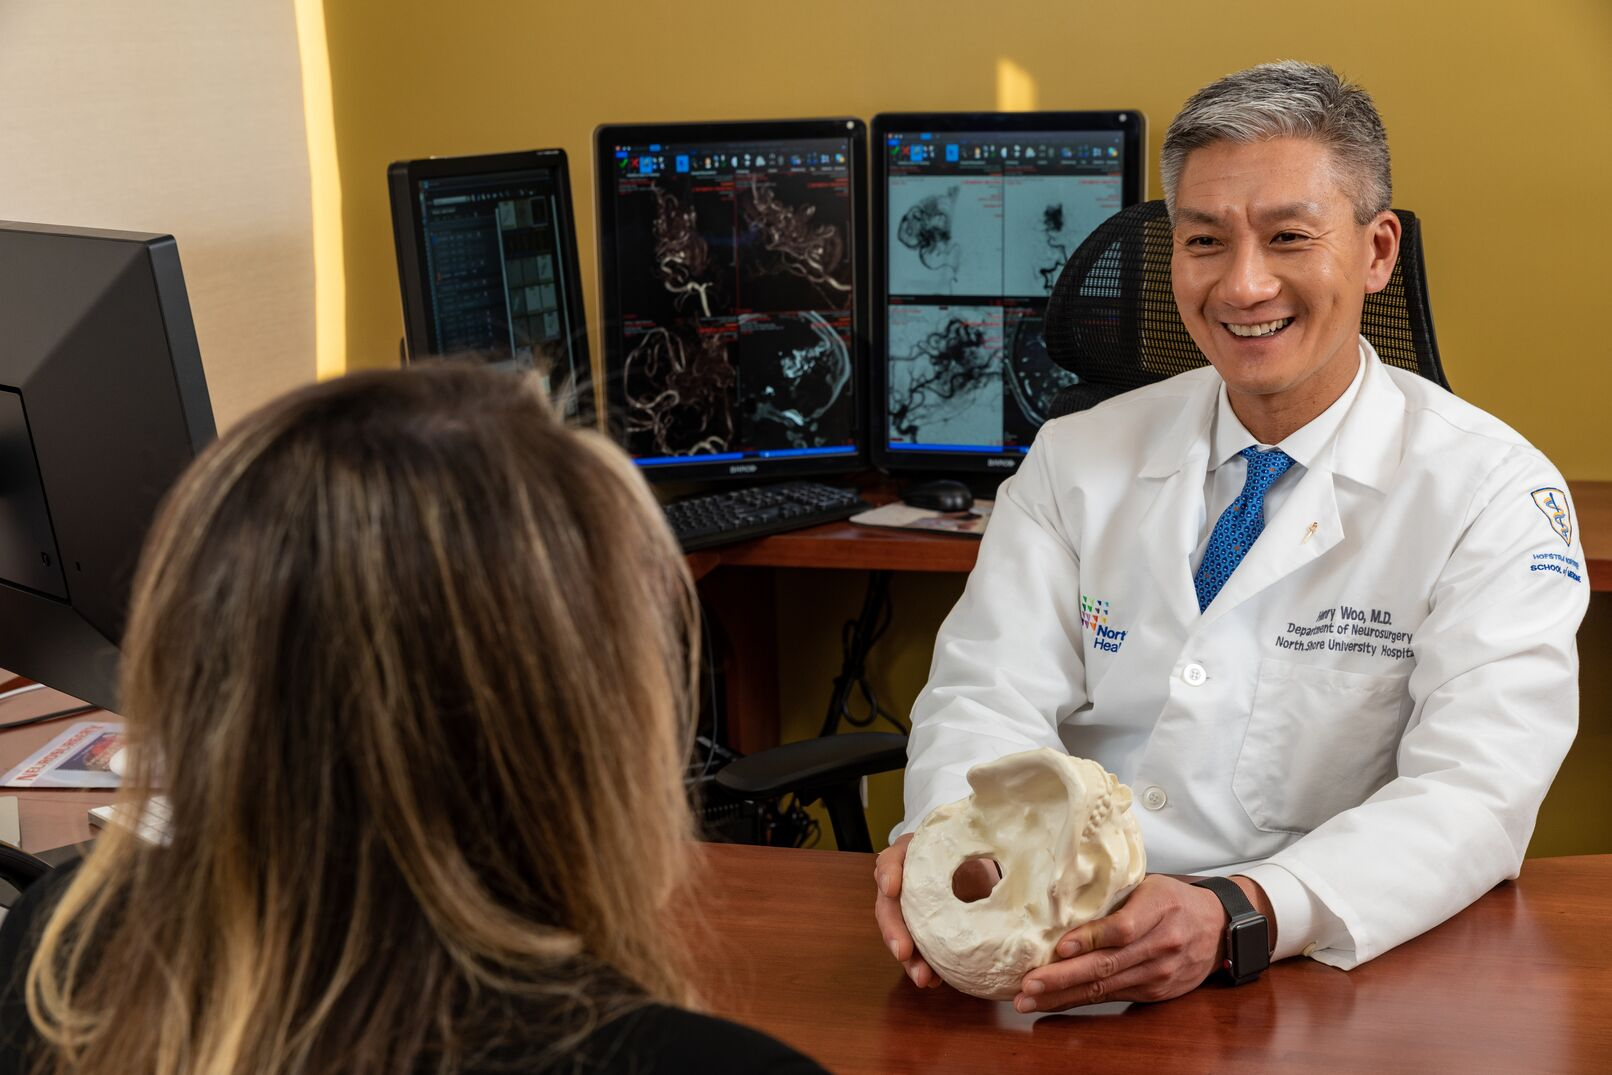 Henry Woo, MD, discusses treatments with a patient. He says two to four percent of people in the US will suffer from a brain aneurysm, 20-percent of which will have multiple aneurysms